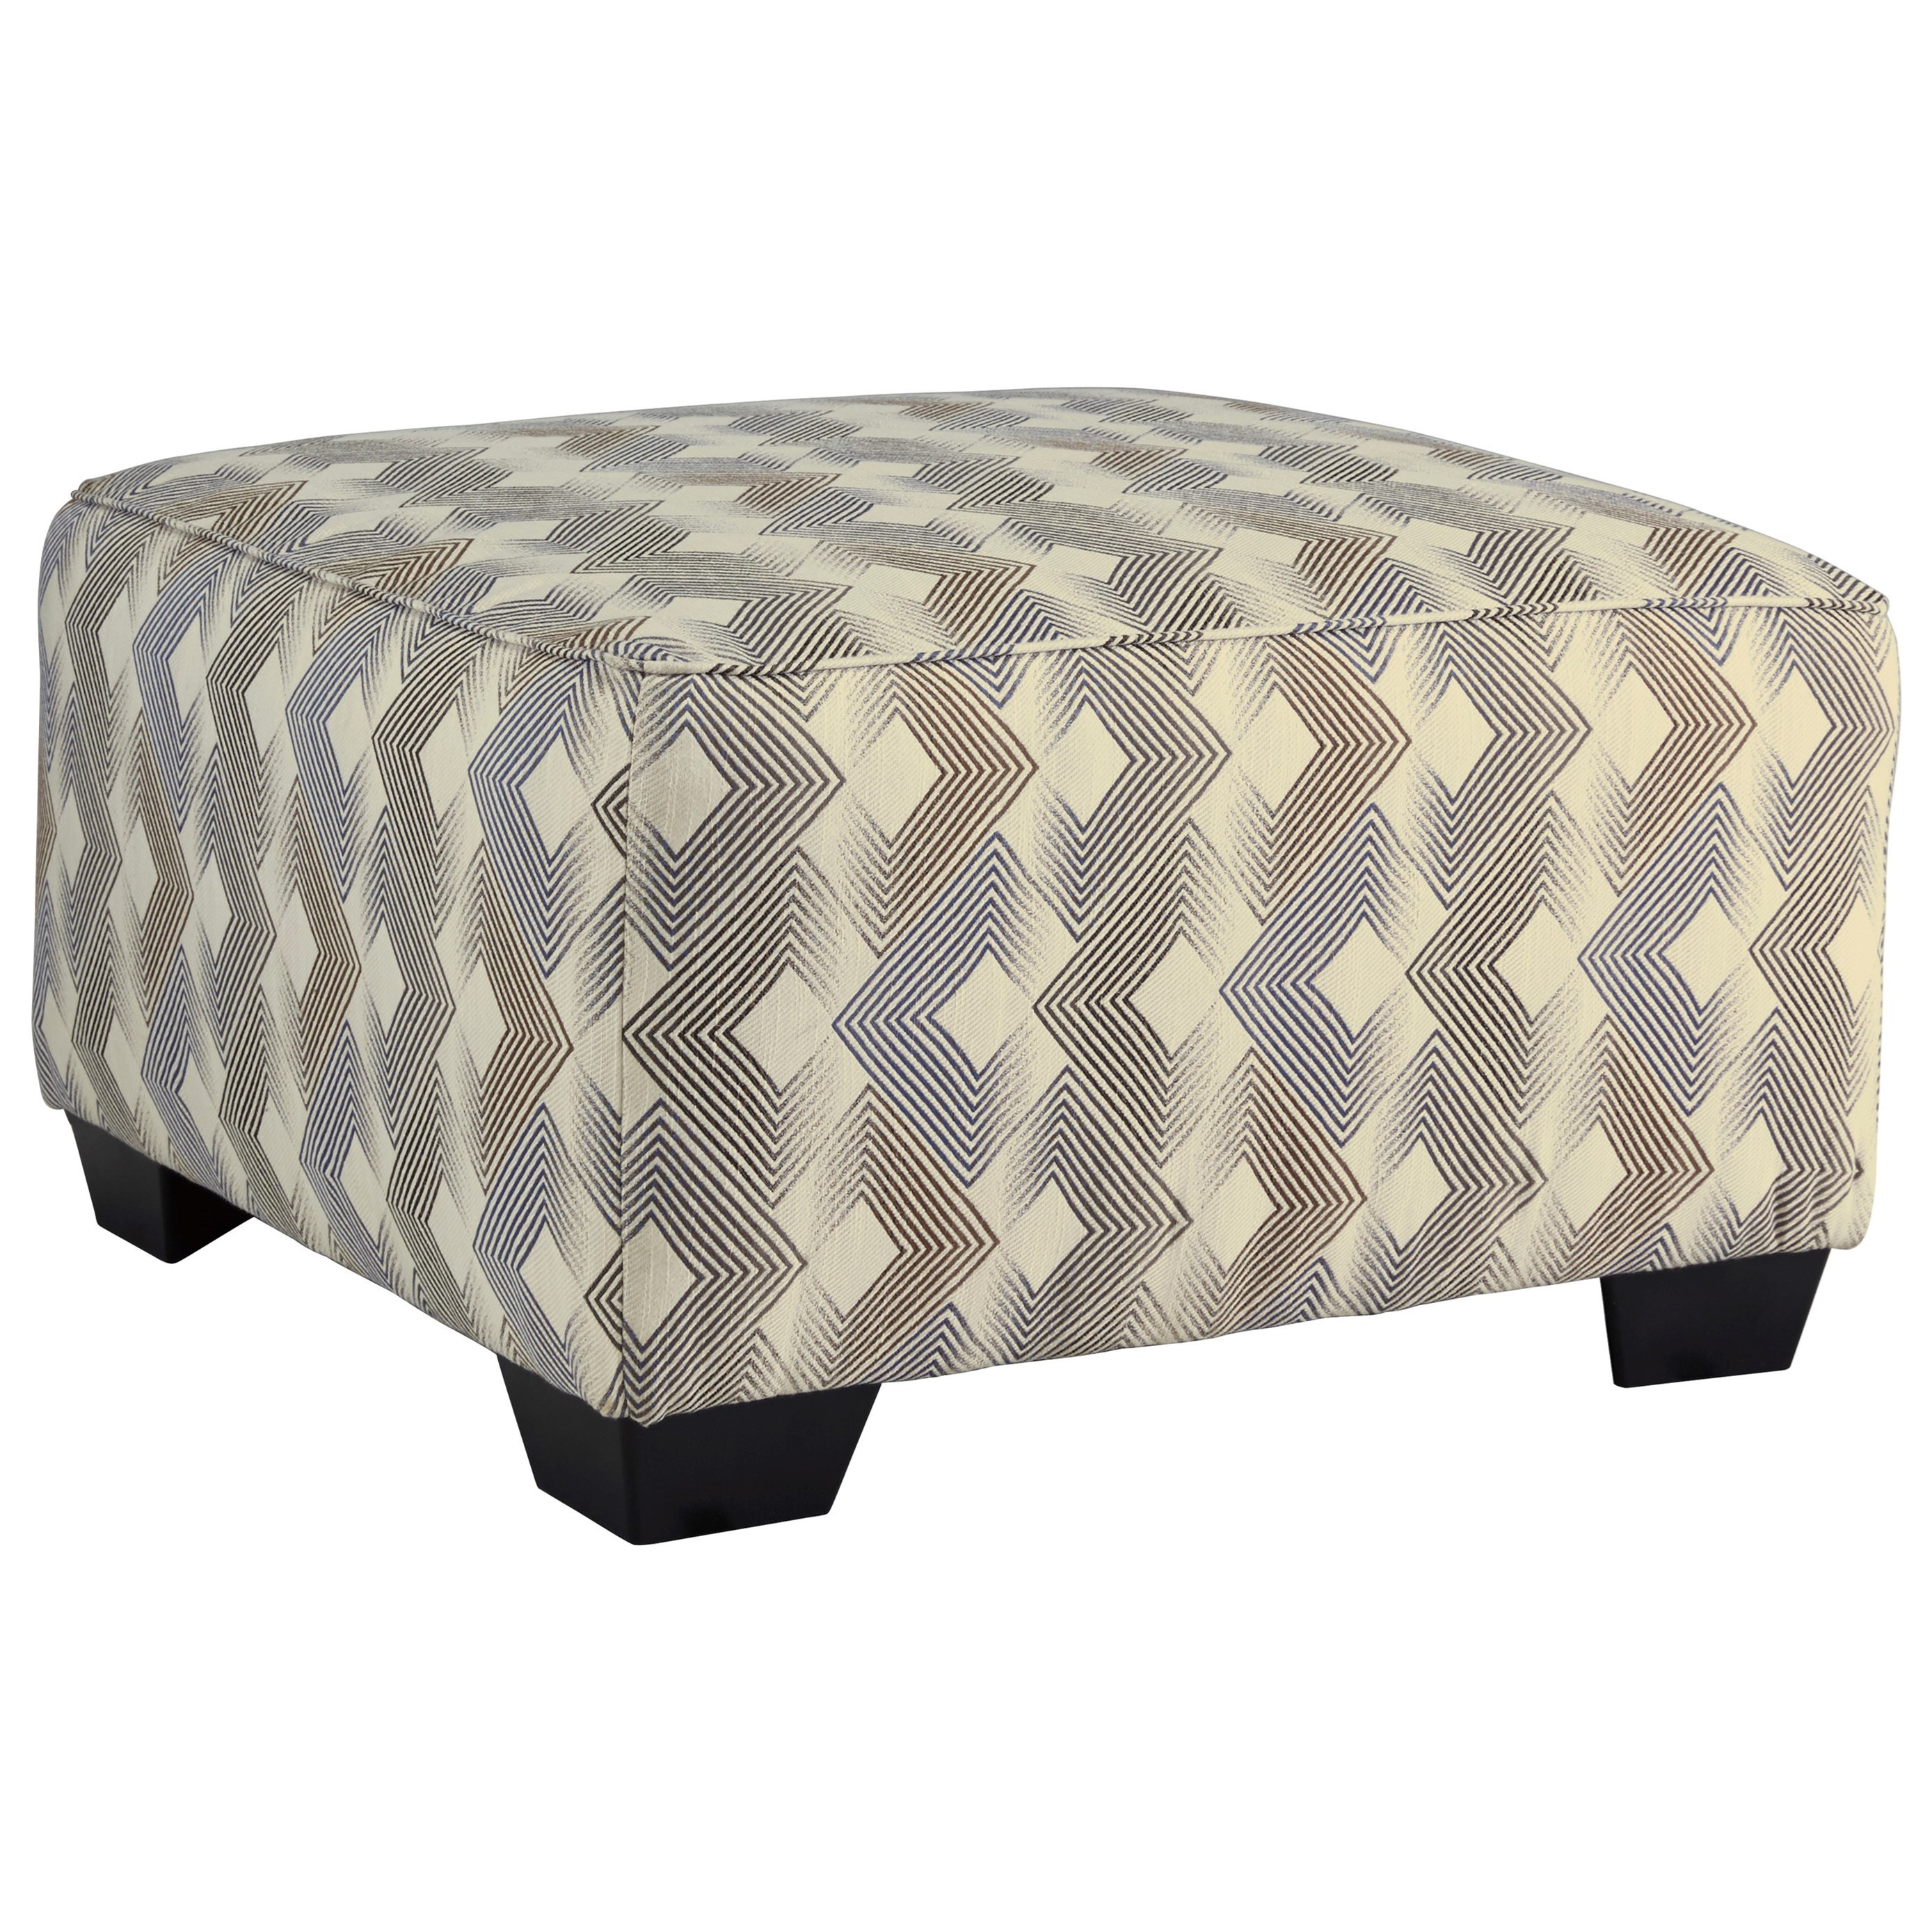 Eltmann Oversized Accent Ottoman by StyleLine at EFO Furniture Outlet